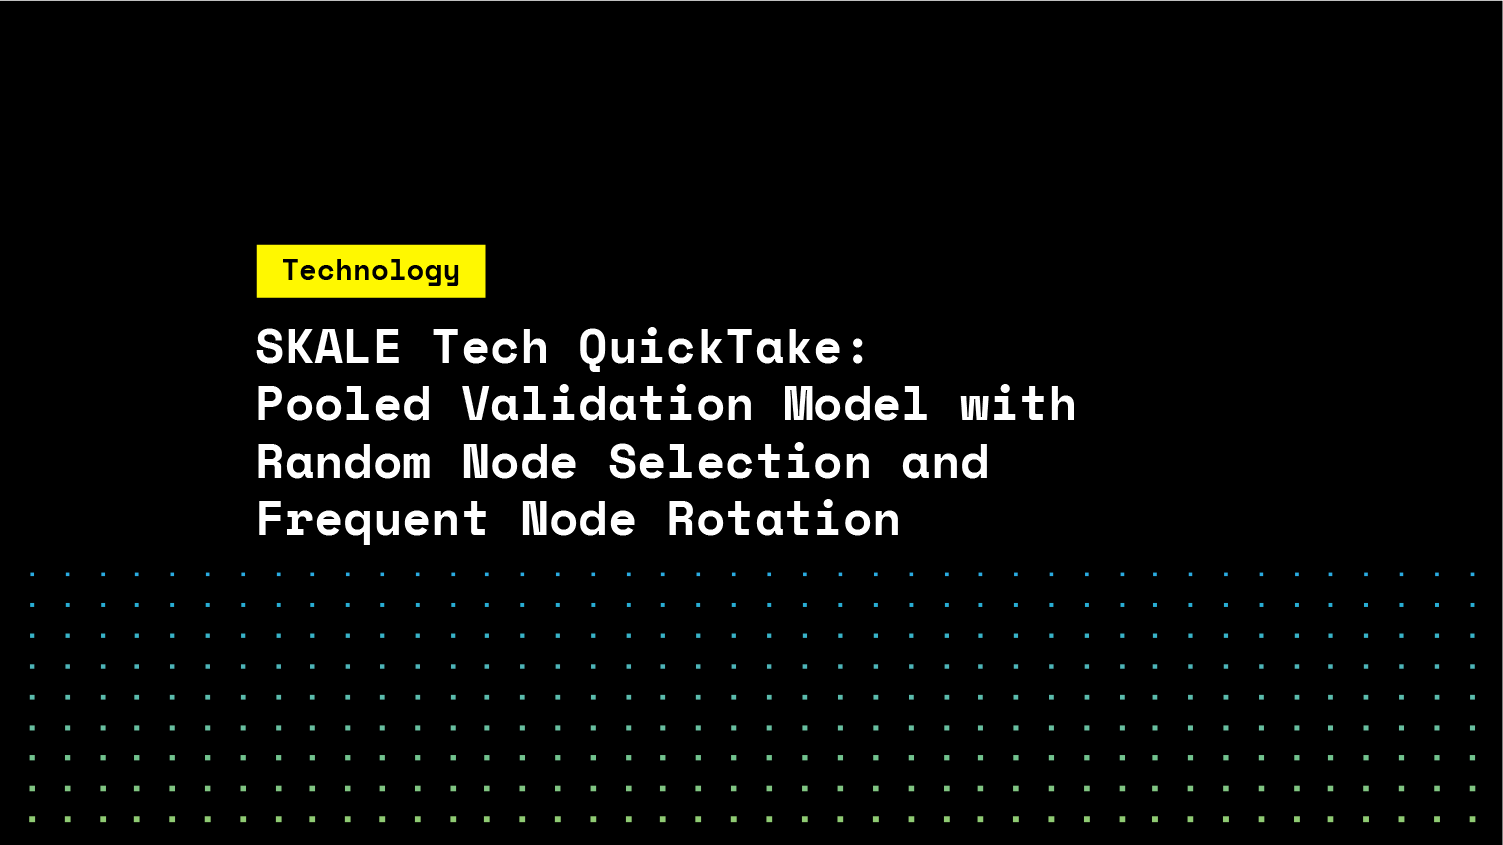 Pooled Validation Model With Random Node Selection and Frequent Node Rotation